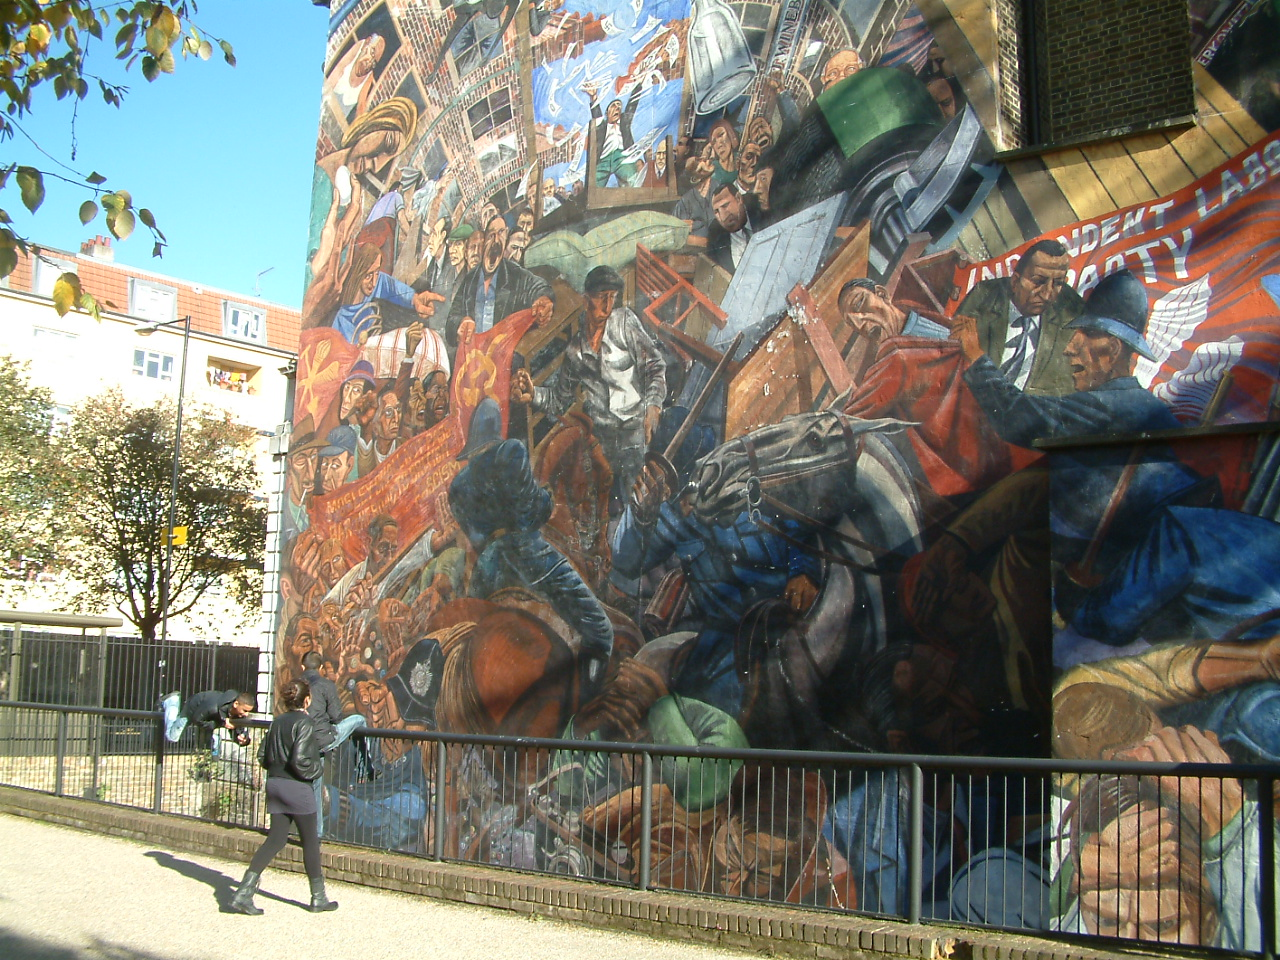 A section of the Cable Street mural showing the barricade and battles between mounted police and protesters. One child is looking up at the mural while another is playing.